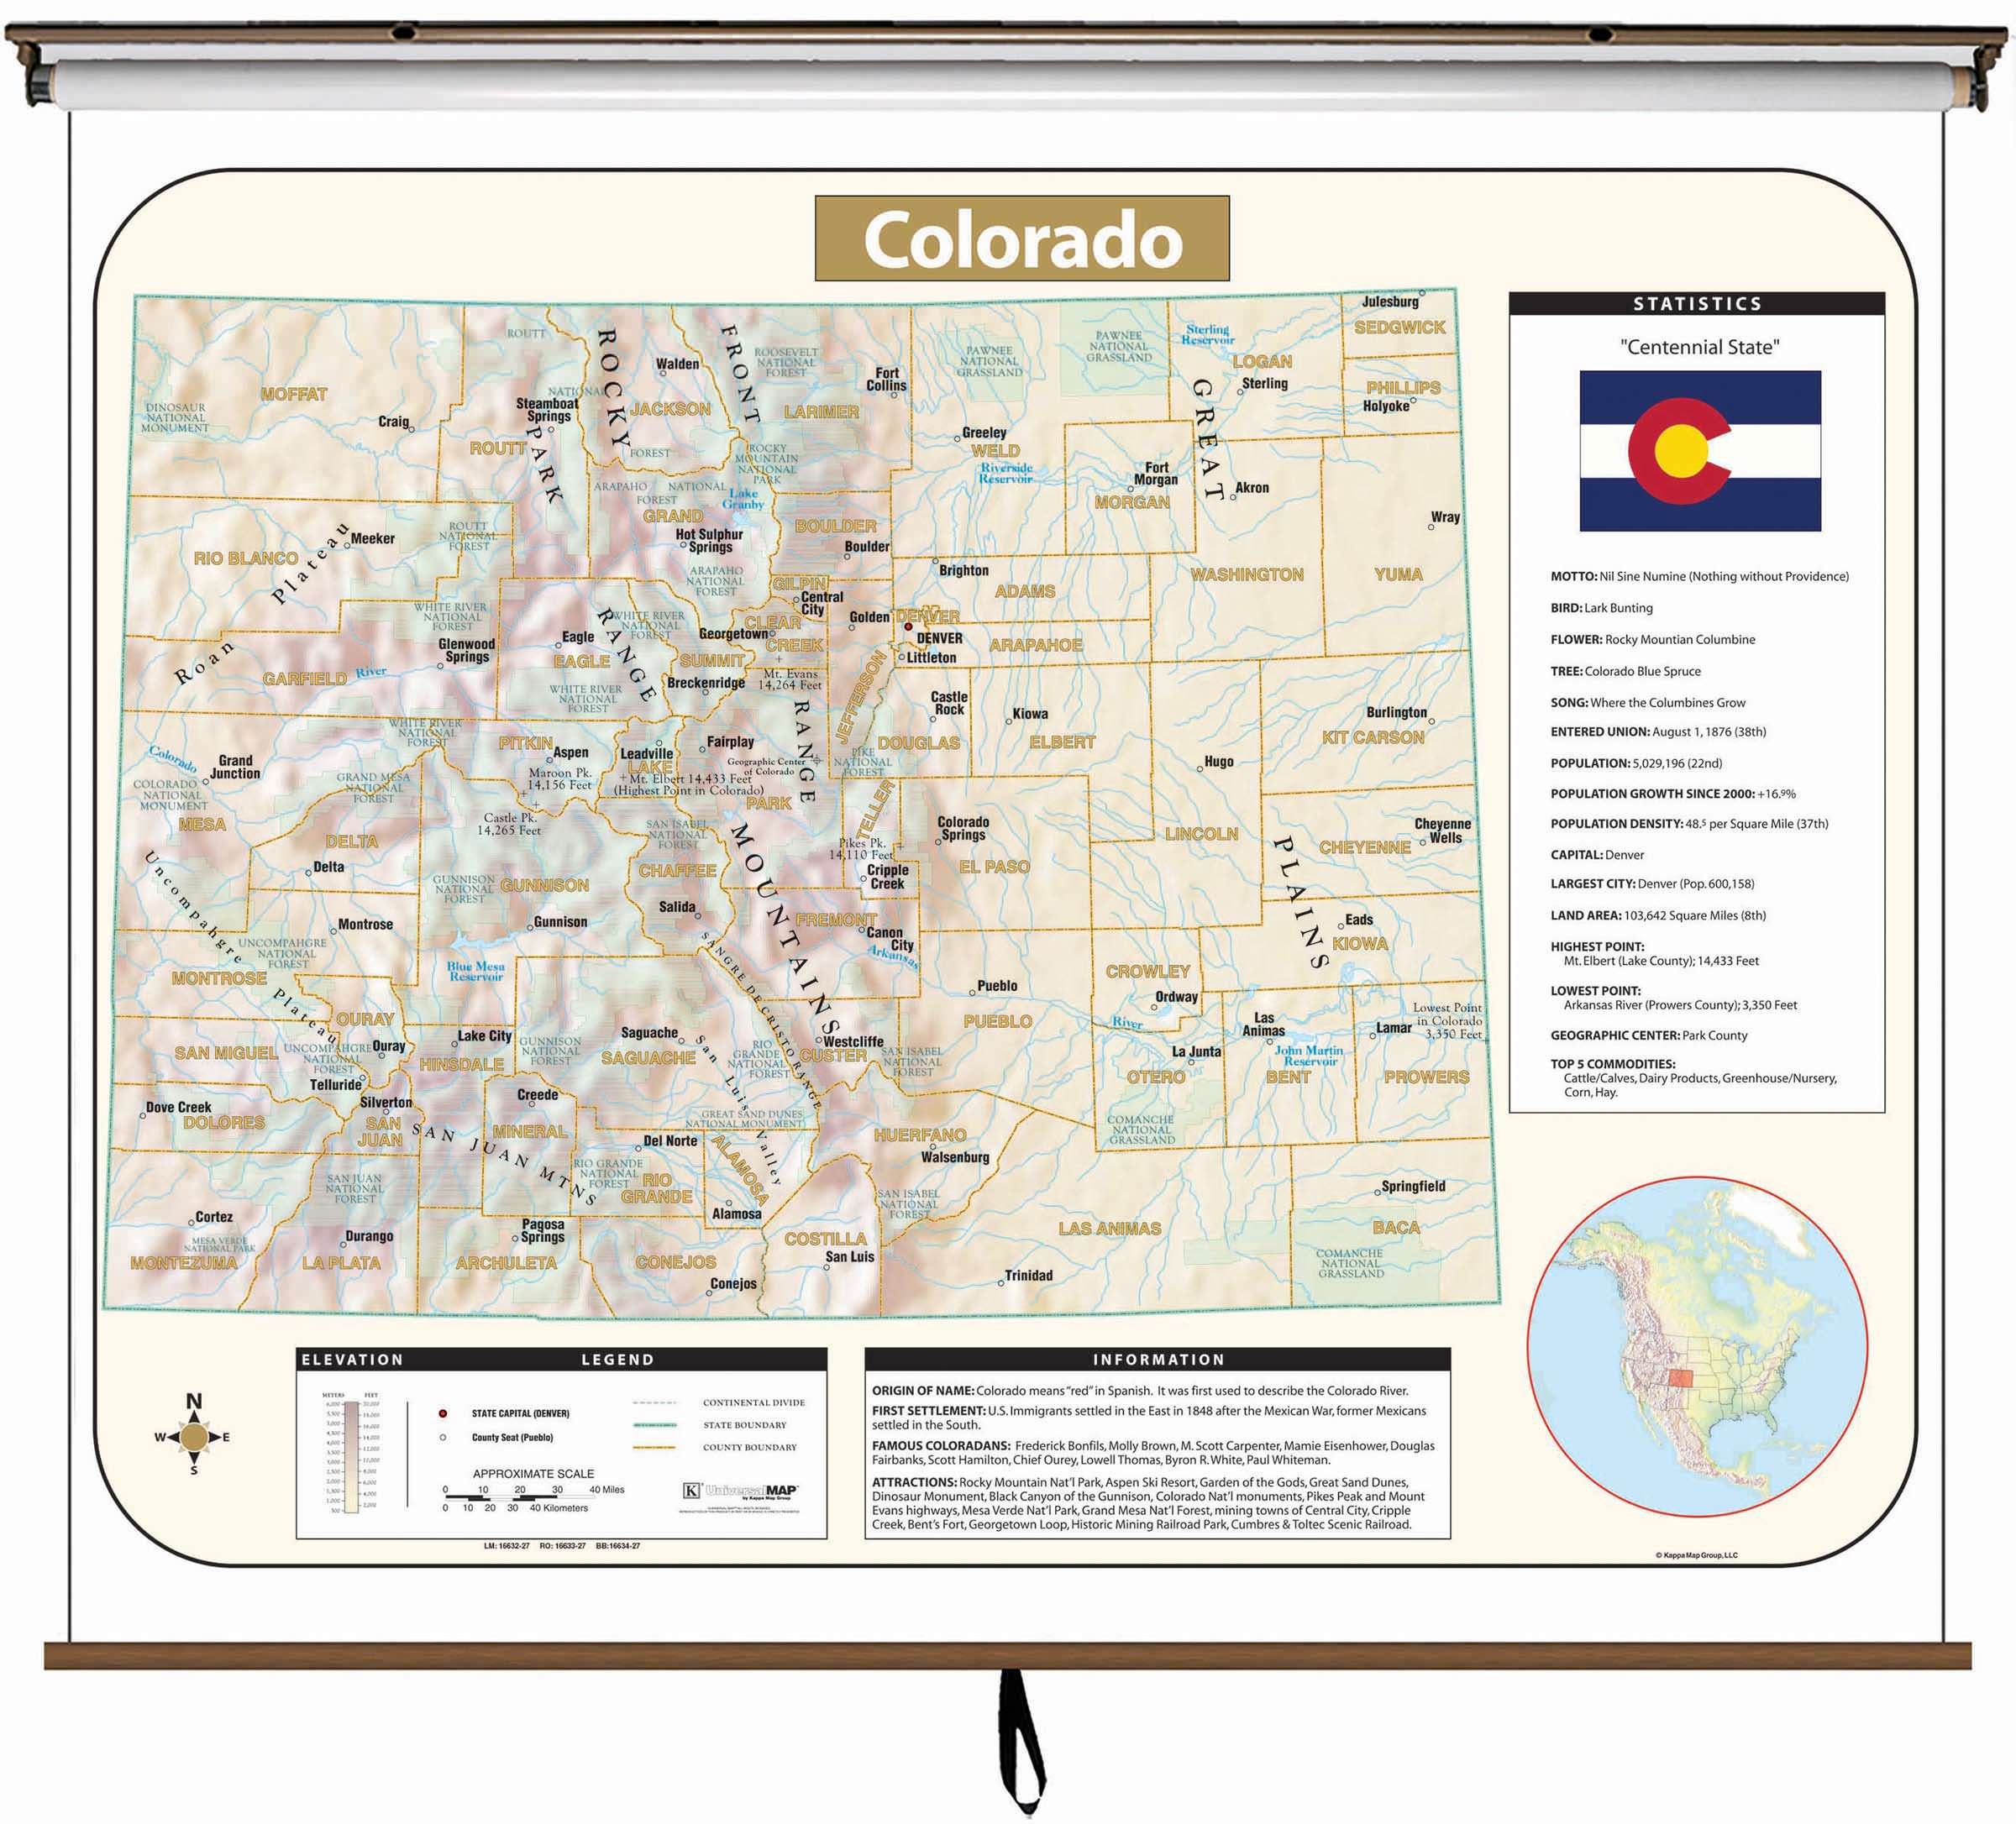 Colorado Large Scale Shaded Relief Wall Map On Roller With Backboard